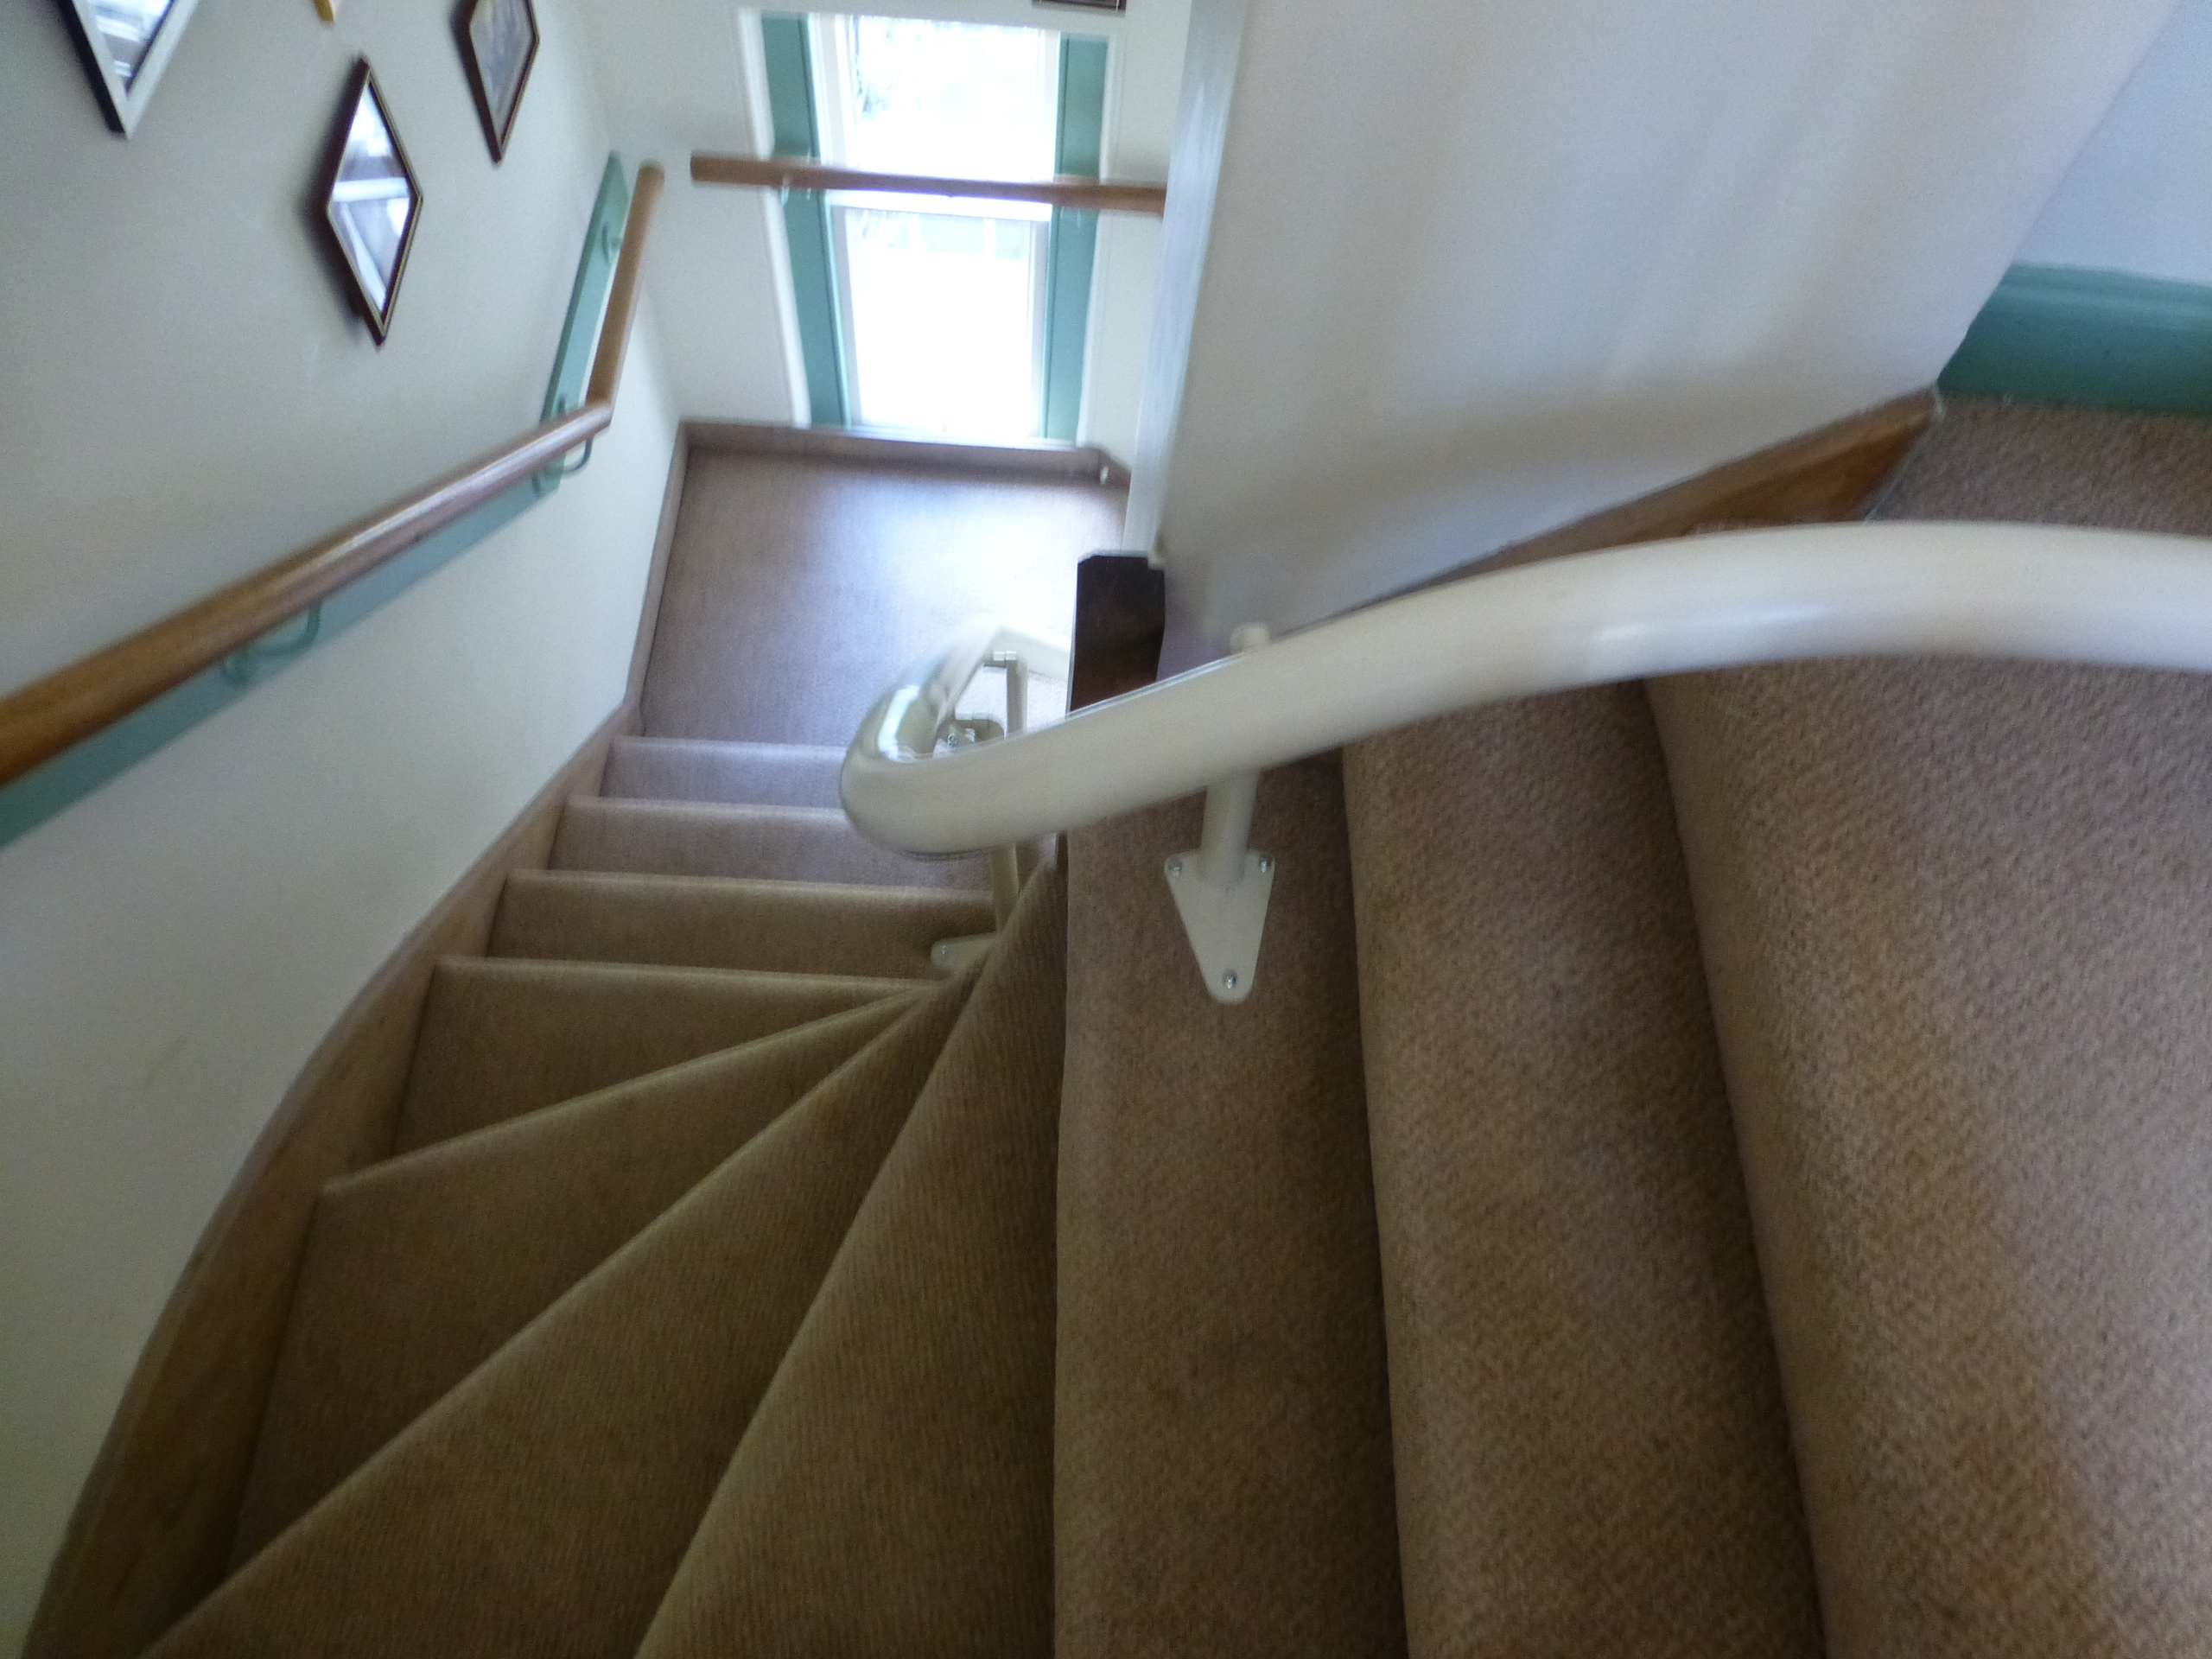 Stair Lift On The Steep Internal Staircase At The End Of The House